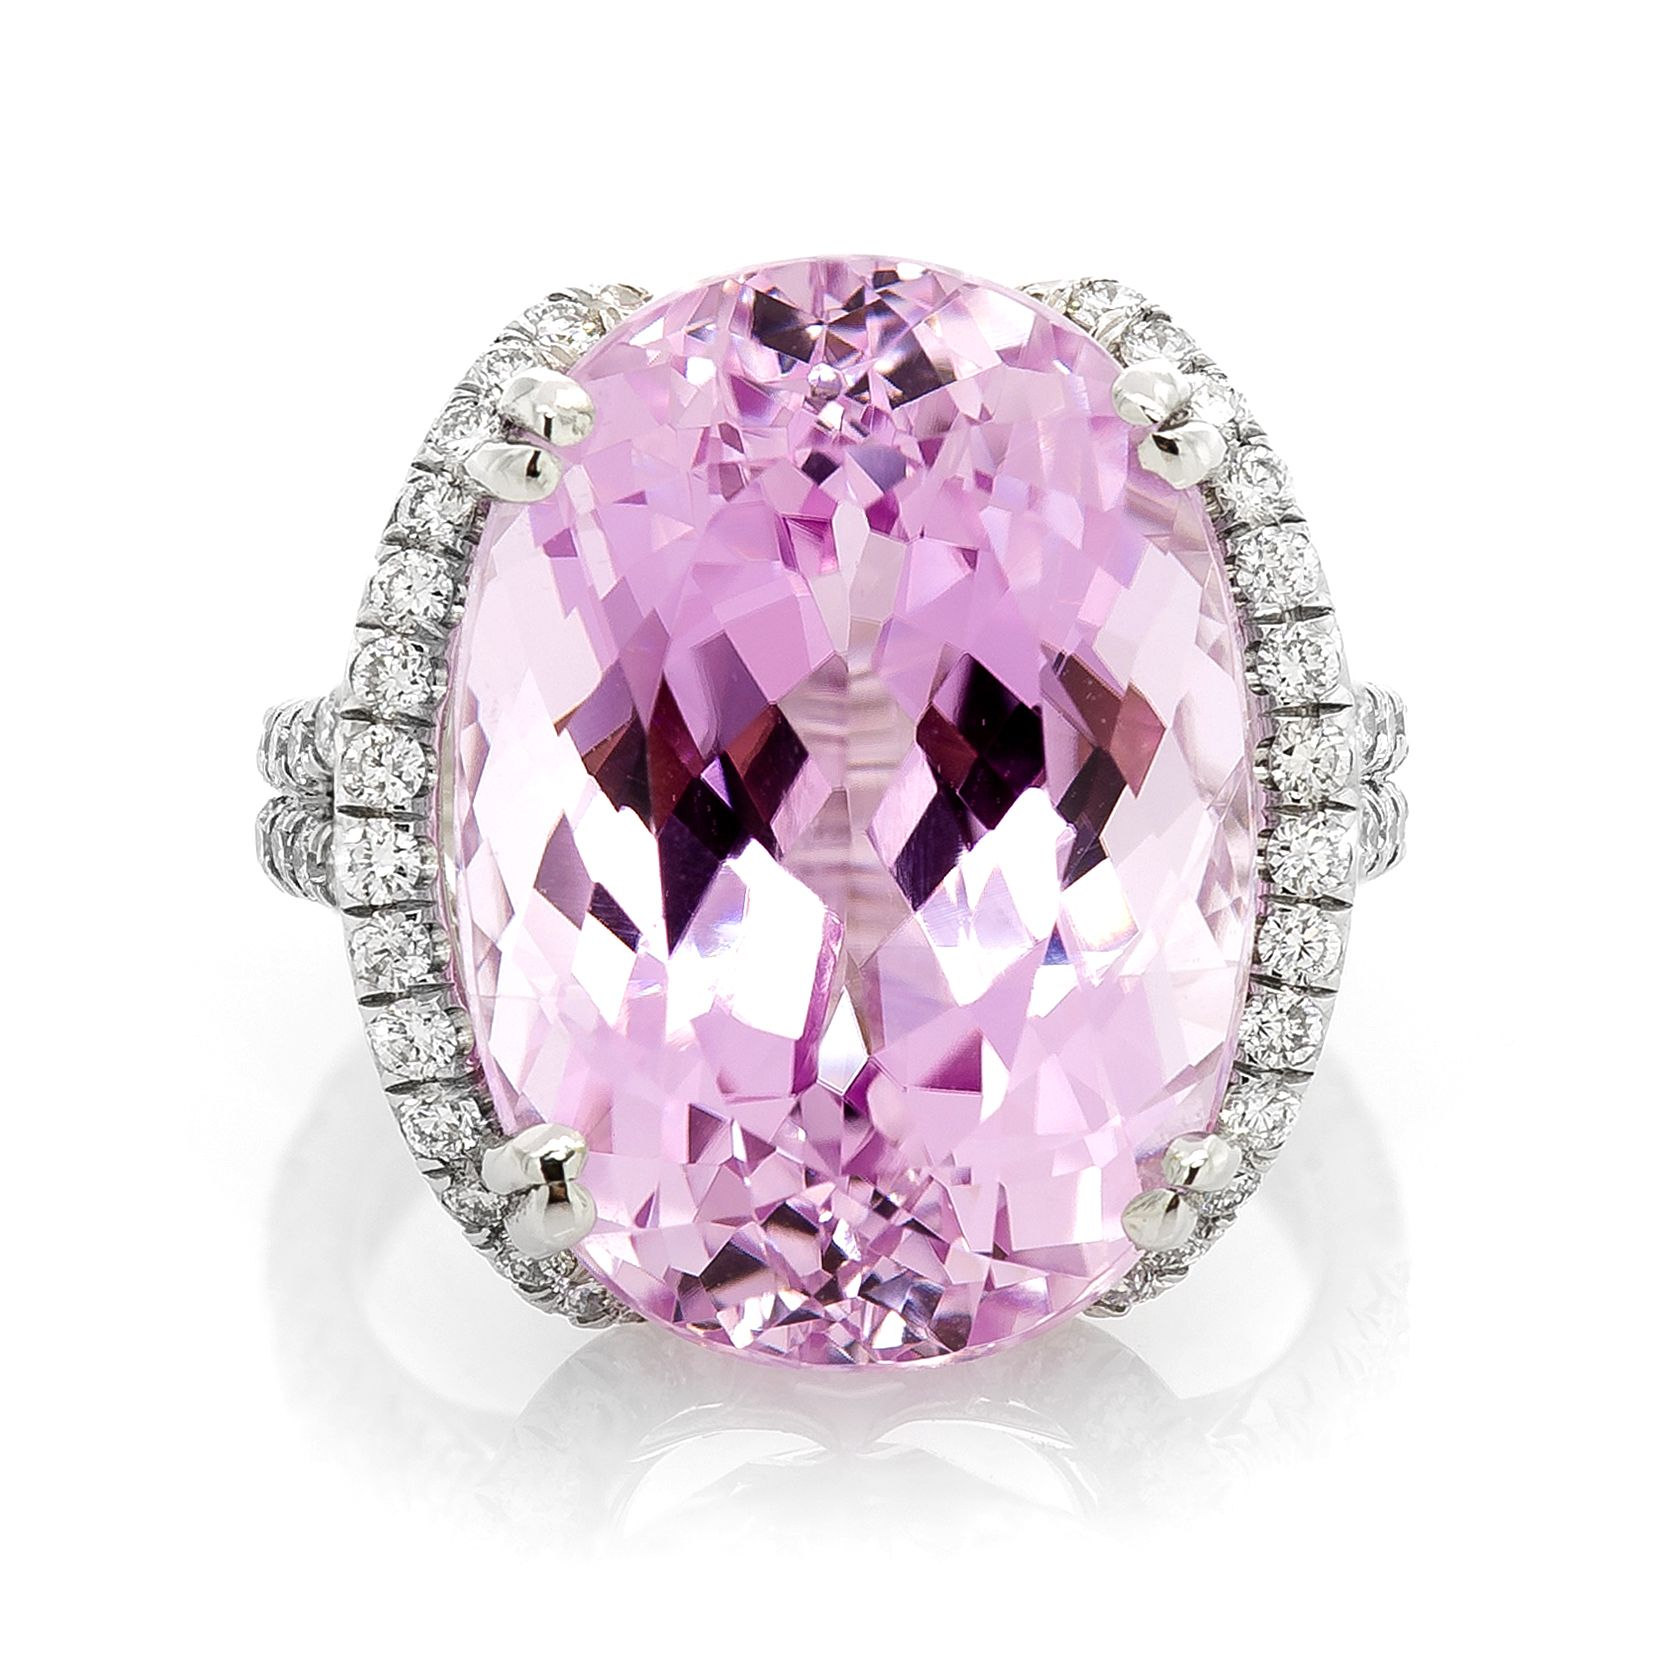 18K White Gold 19.70Ct Oval Cut Kunzite & 1.40Ct Diamond Ring Our ...